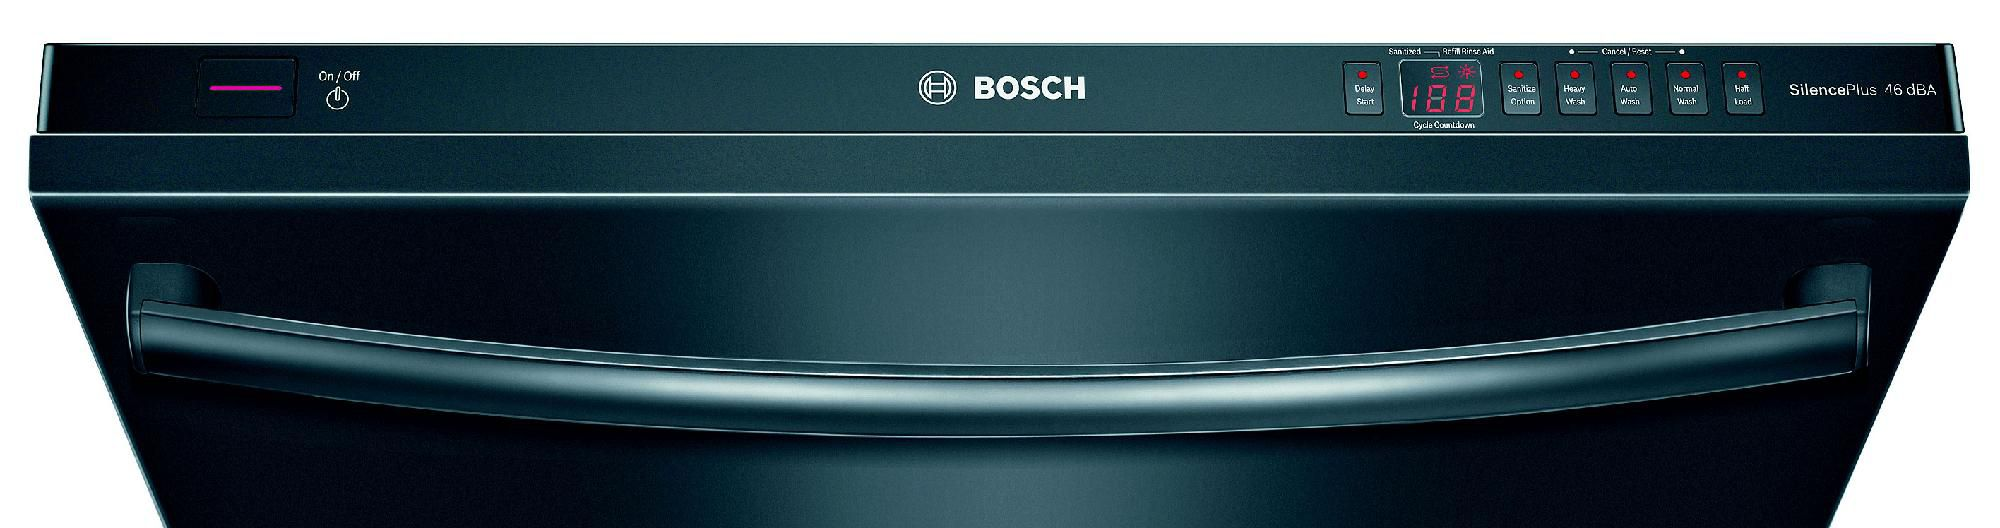 "Bosch 24"" Built-In Dishwasher Black"